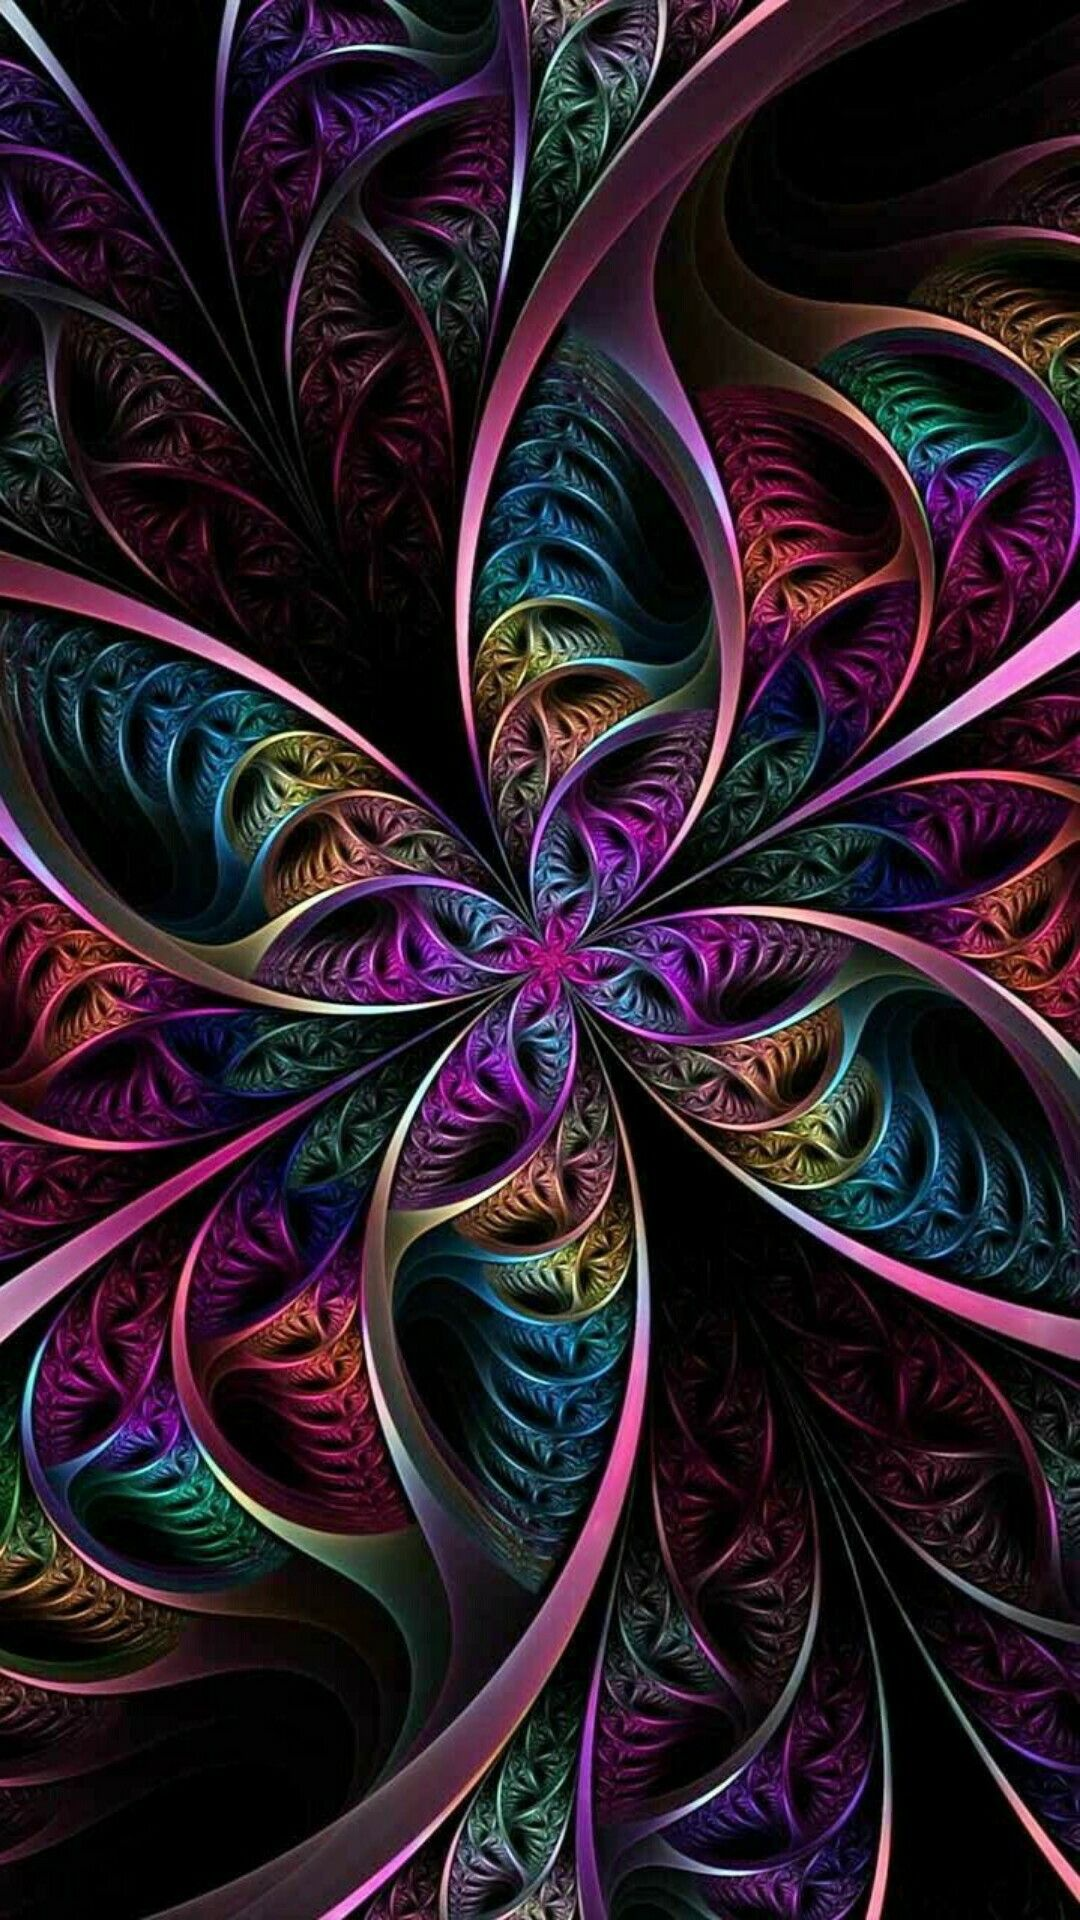 Pin By Joanie Domenech On Misc Pics Psychedelic Art Abstract Fractal Art